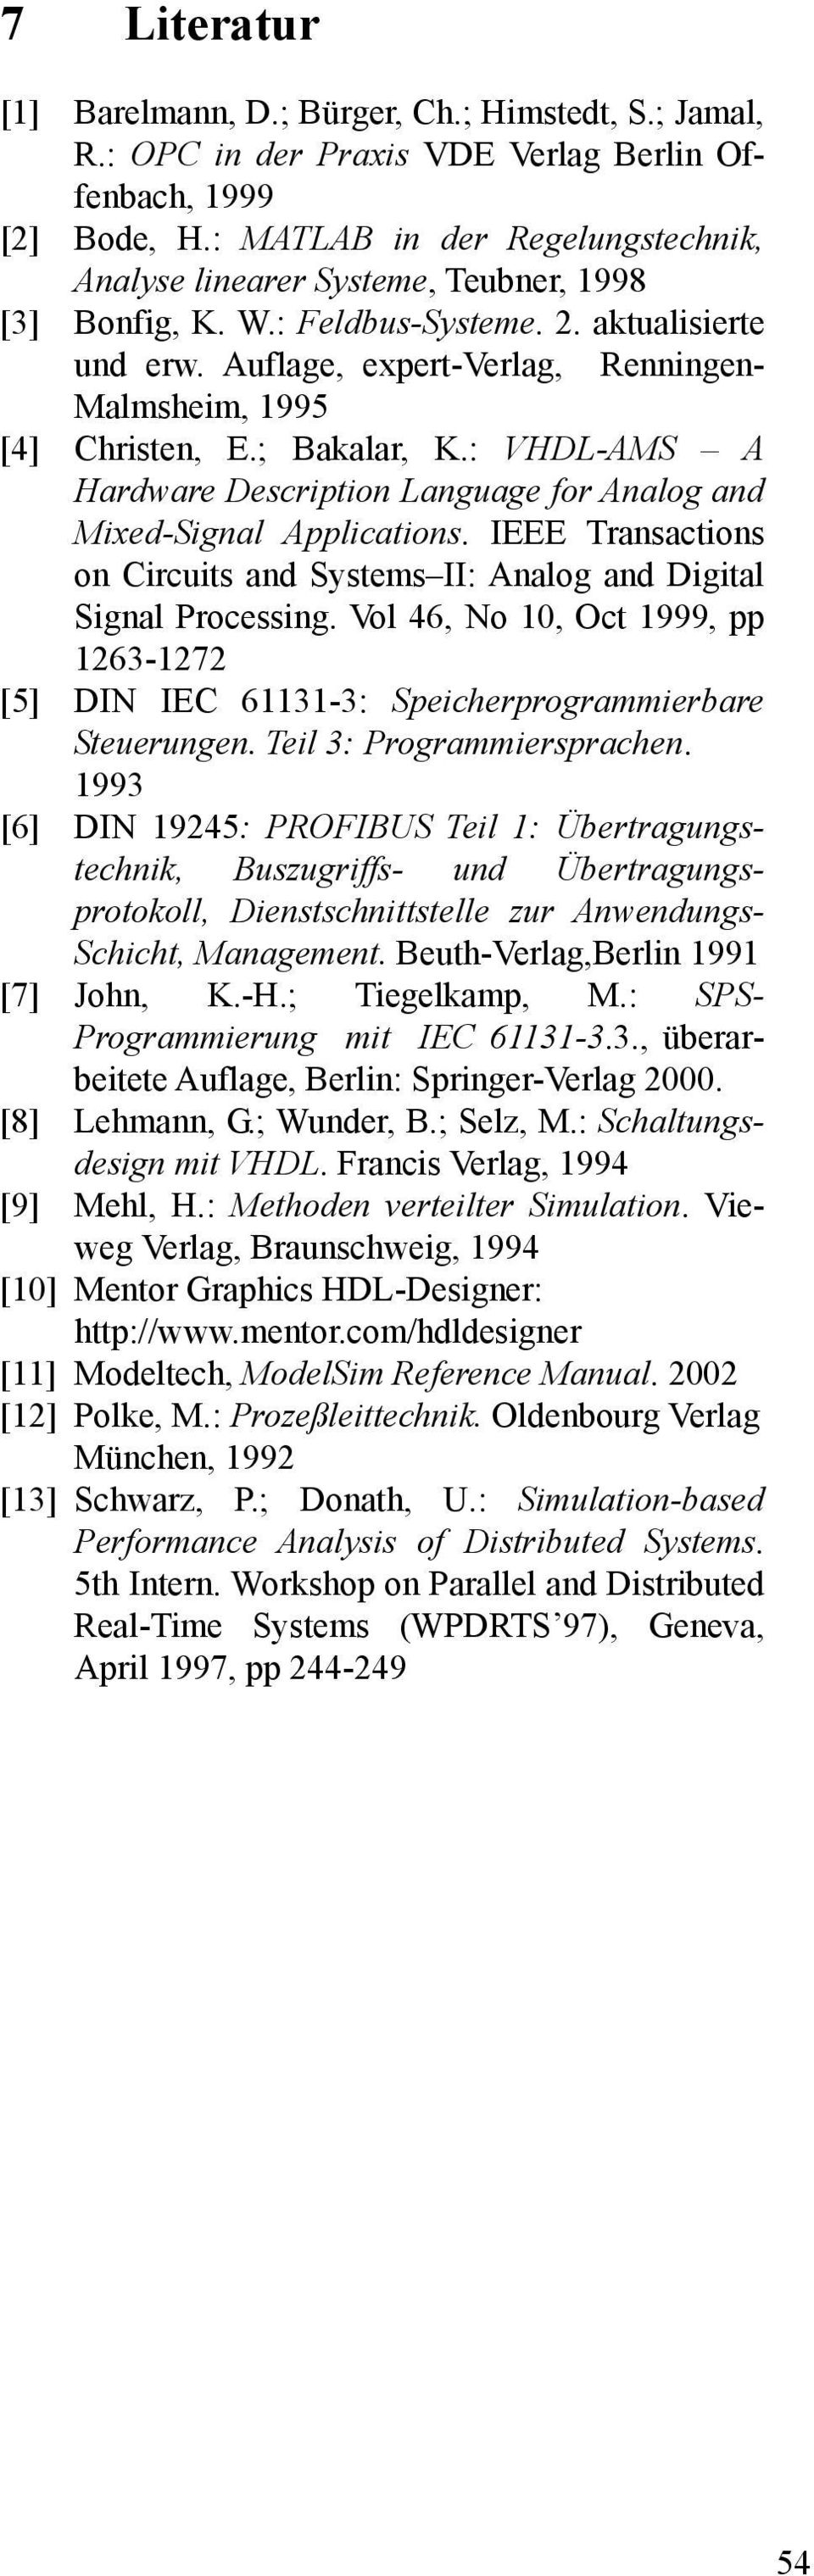 Auflage, expert-verlag, Renningen- Malmsheim, 1995 [4] Christen, E.; Bakalar, K.: VHDL-AMS A Hardware Description Language for Analog and Mixed-Signal Applications.